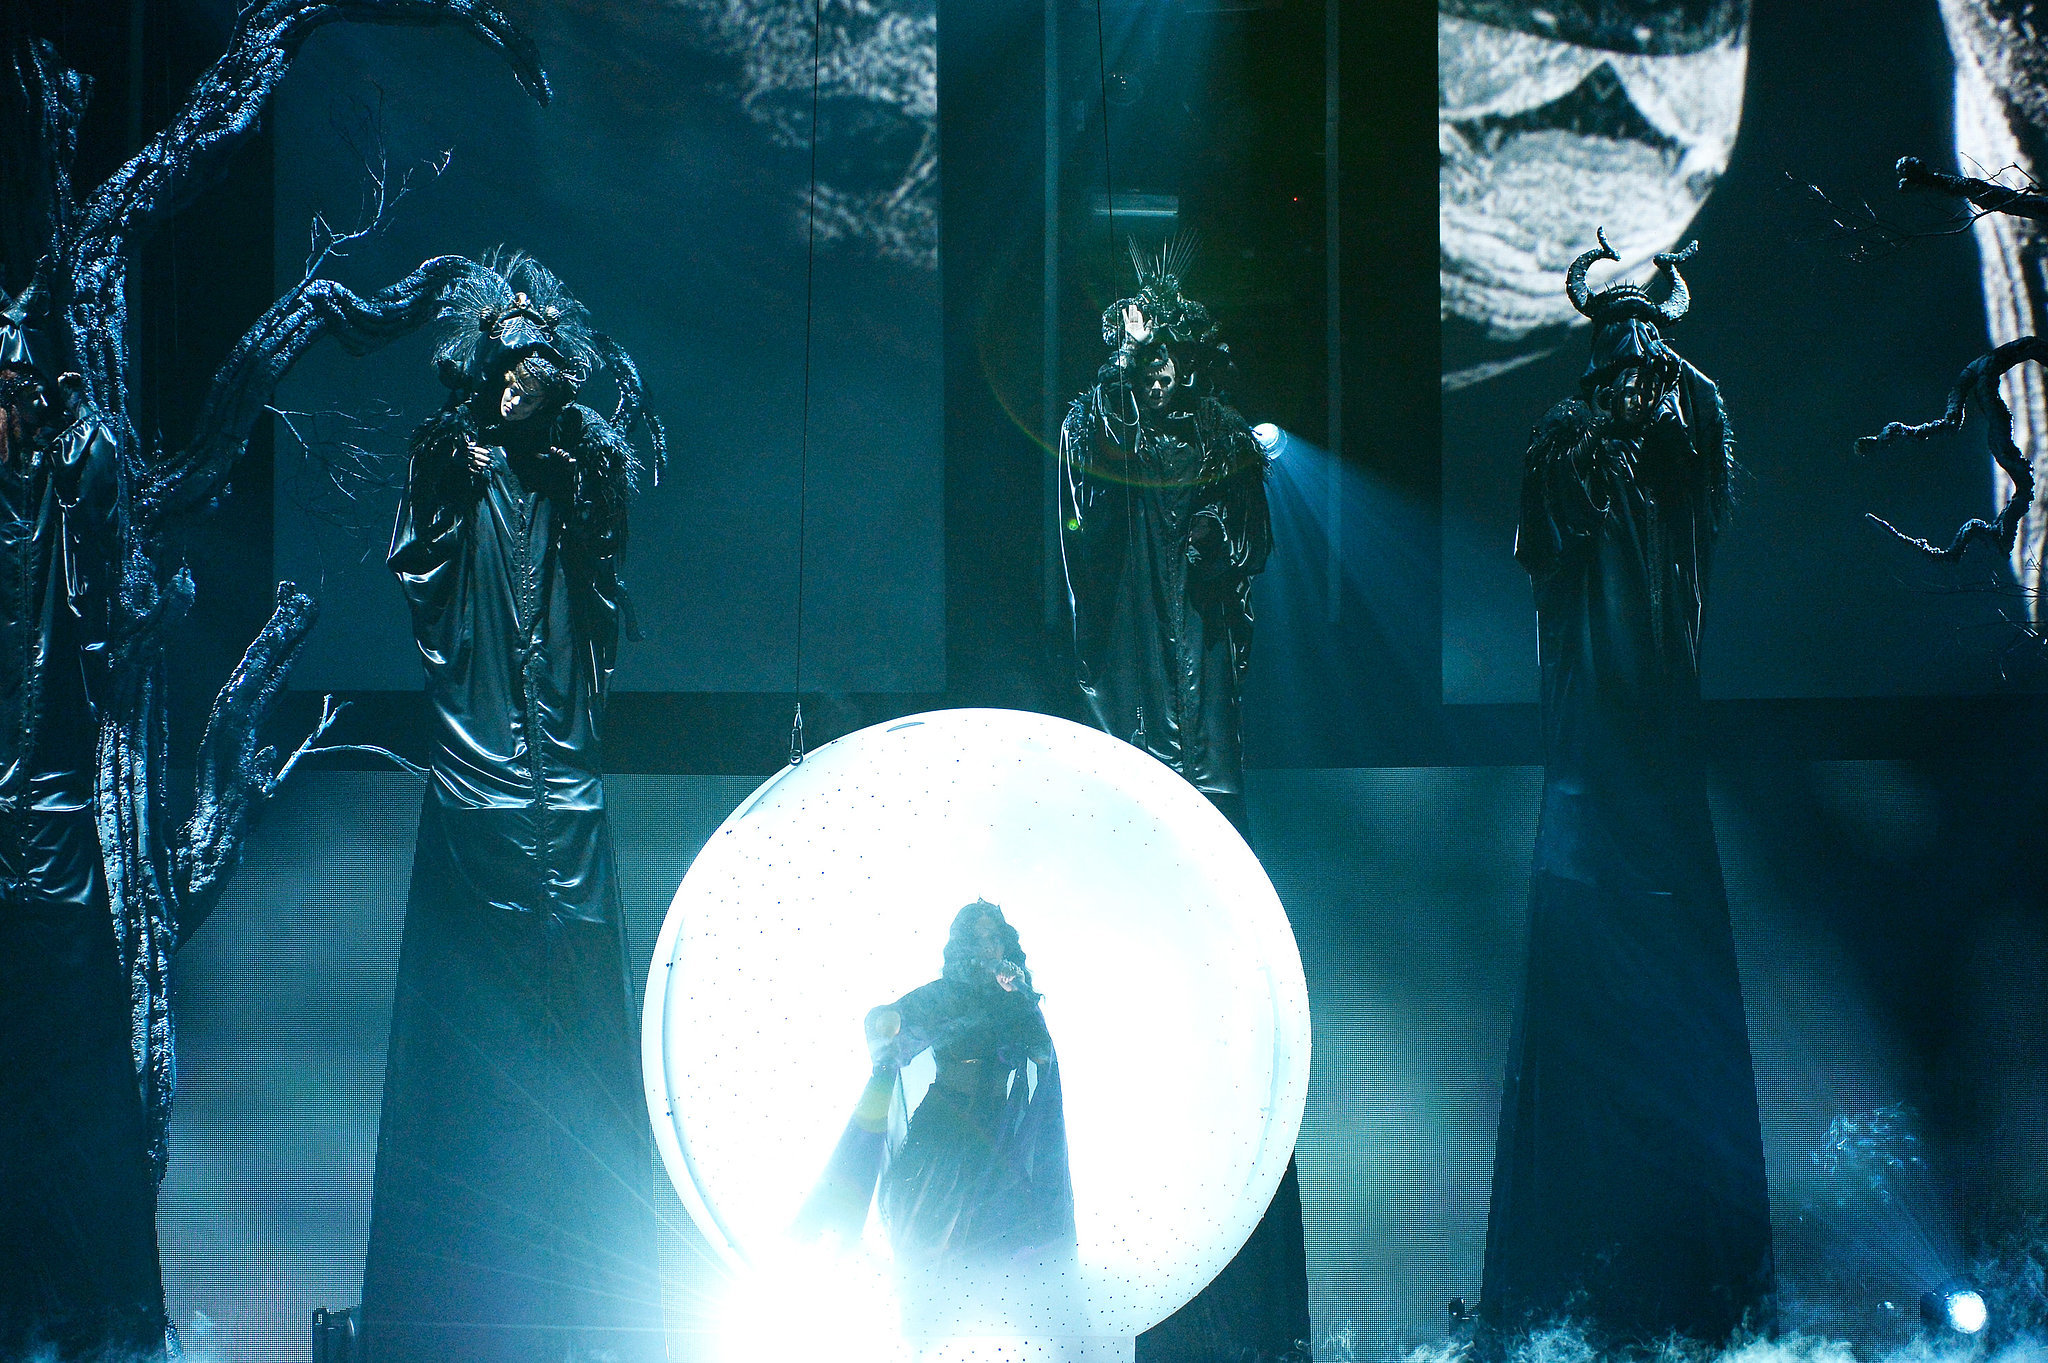 Katy Perry emerged from an illuminated ball.